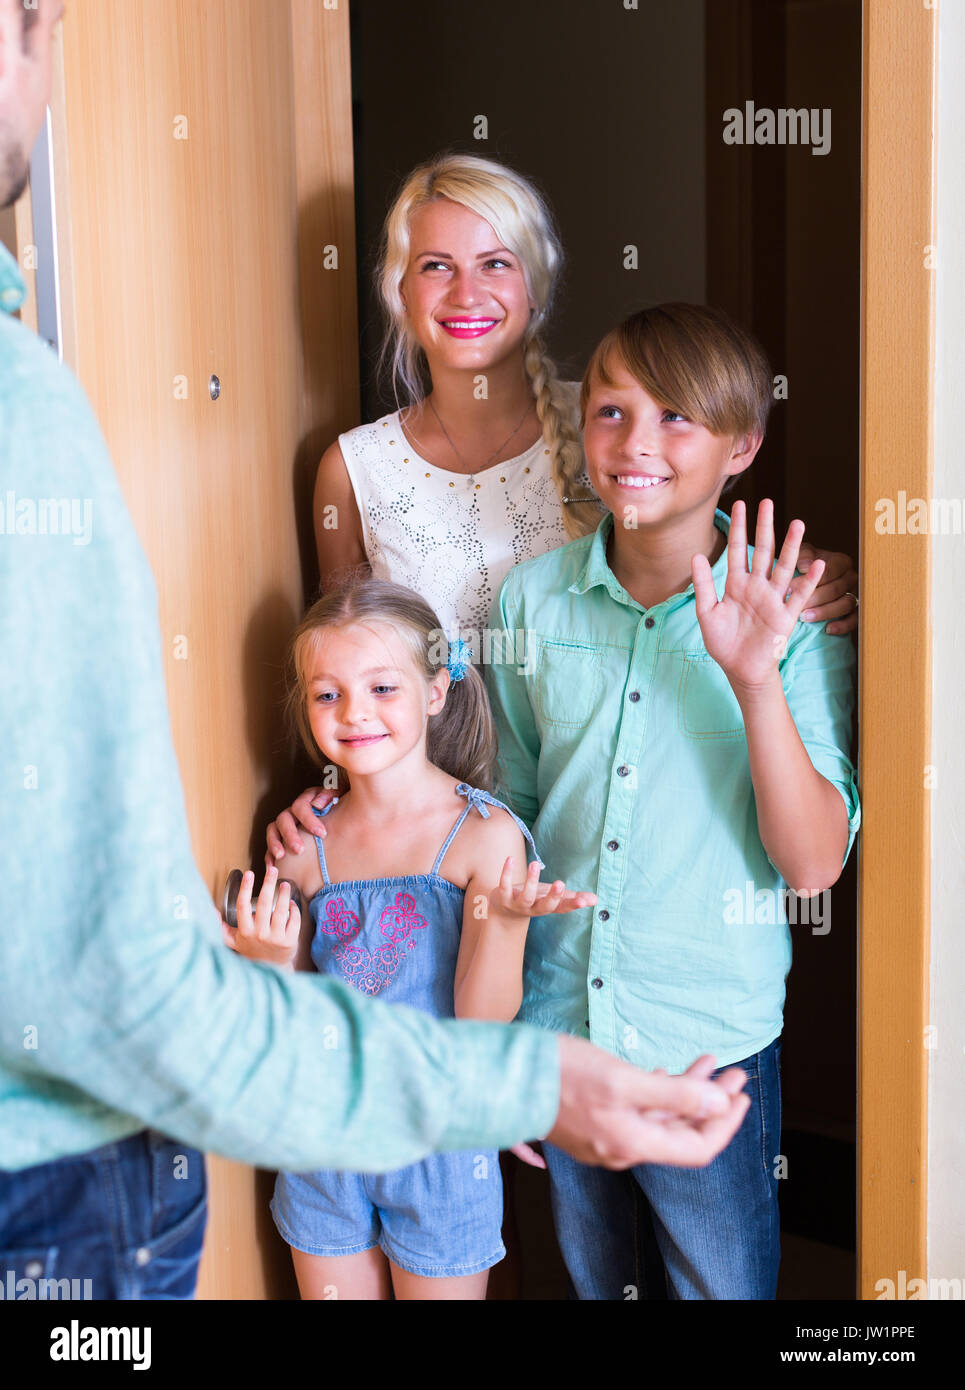 Hospitable man greeting happy smiling guests at apartment entrance Stock Photo